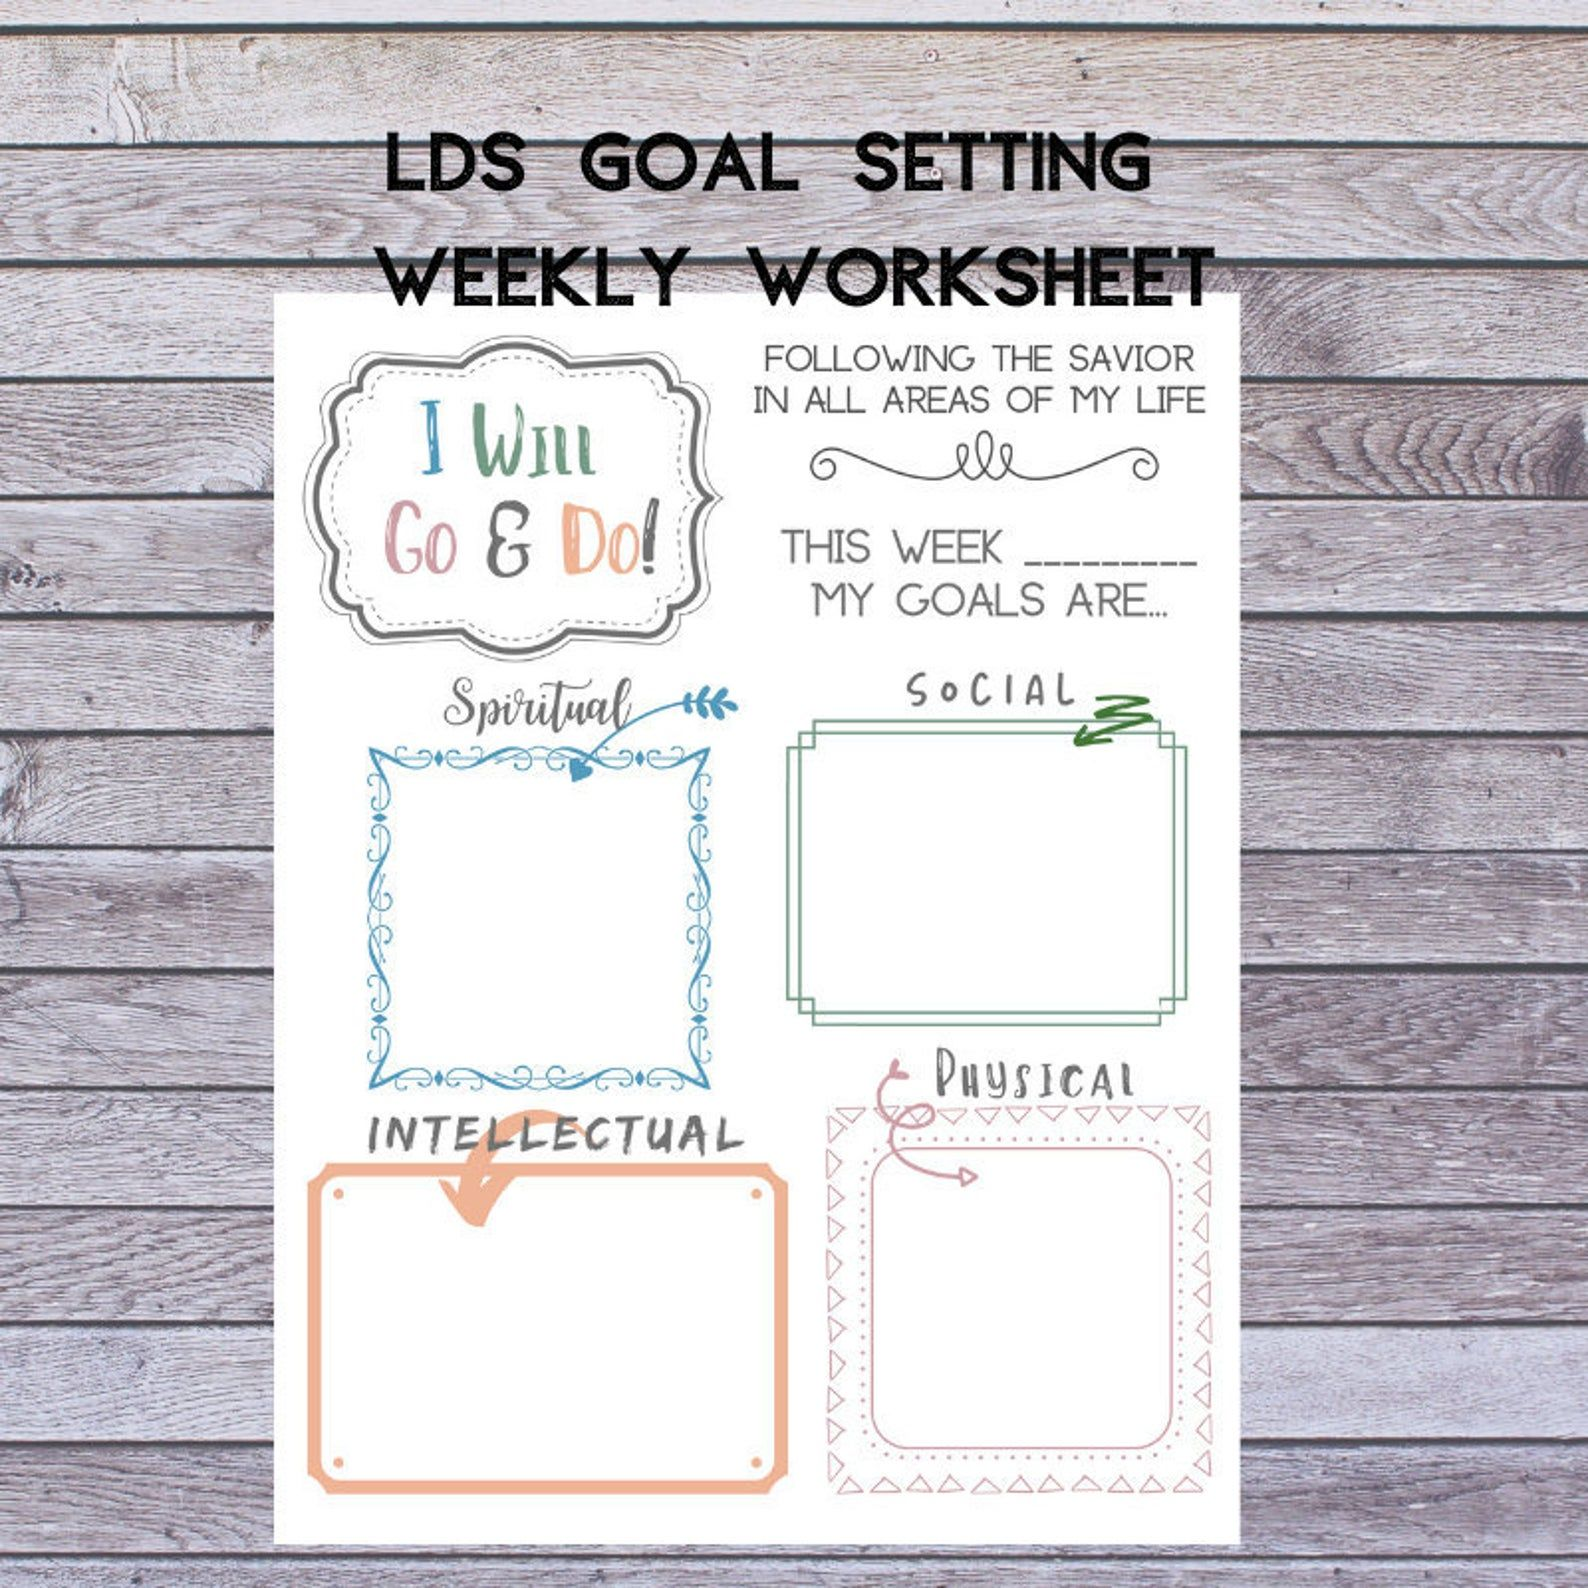 Lds Youth And Children Goal Setting Weekly Worksheet And